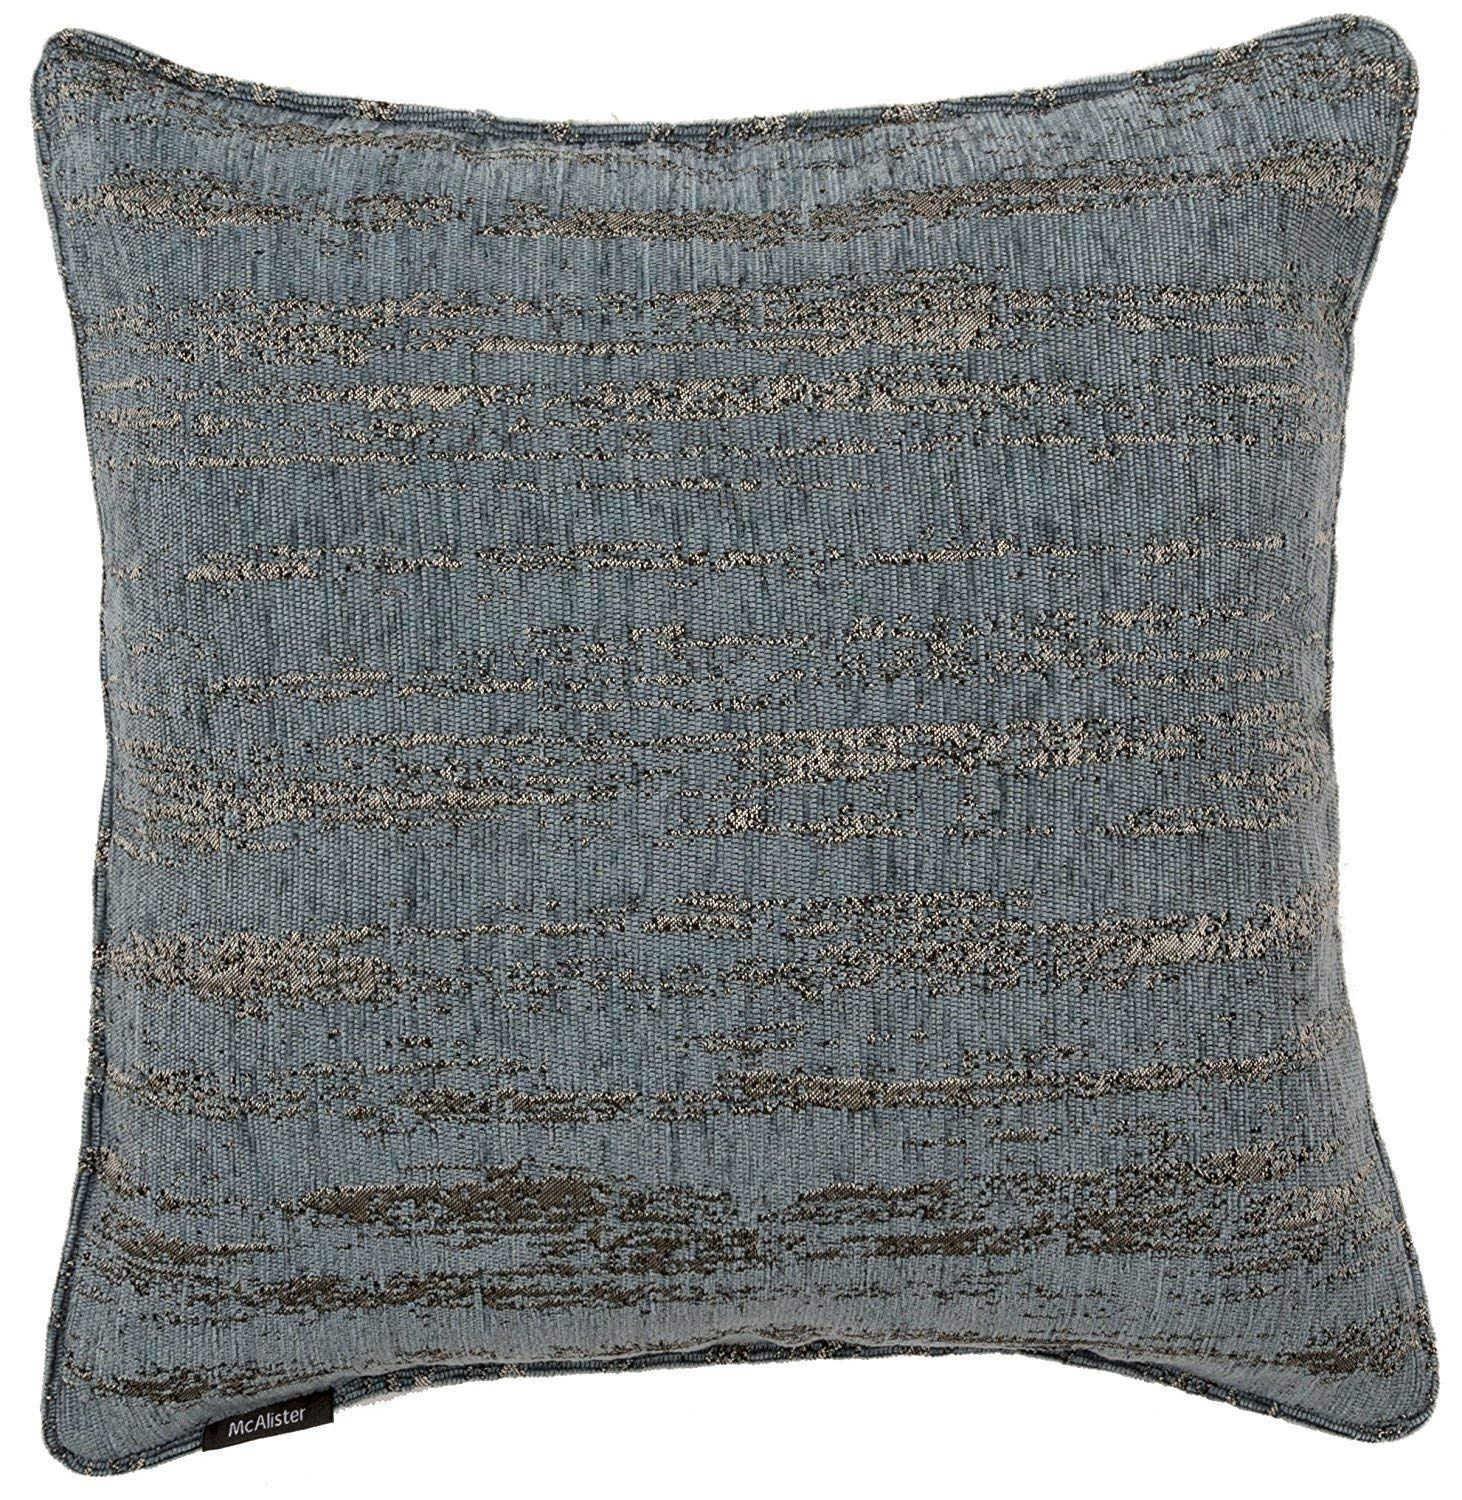 McAlister Textiles Textured Chenille Pillow Case | Denim Blue Funky Patterned Design Decorative Throw Scatter Sofa Cushion Sham | Size - 24 x 24 Inches